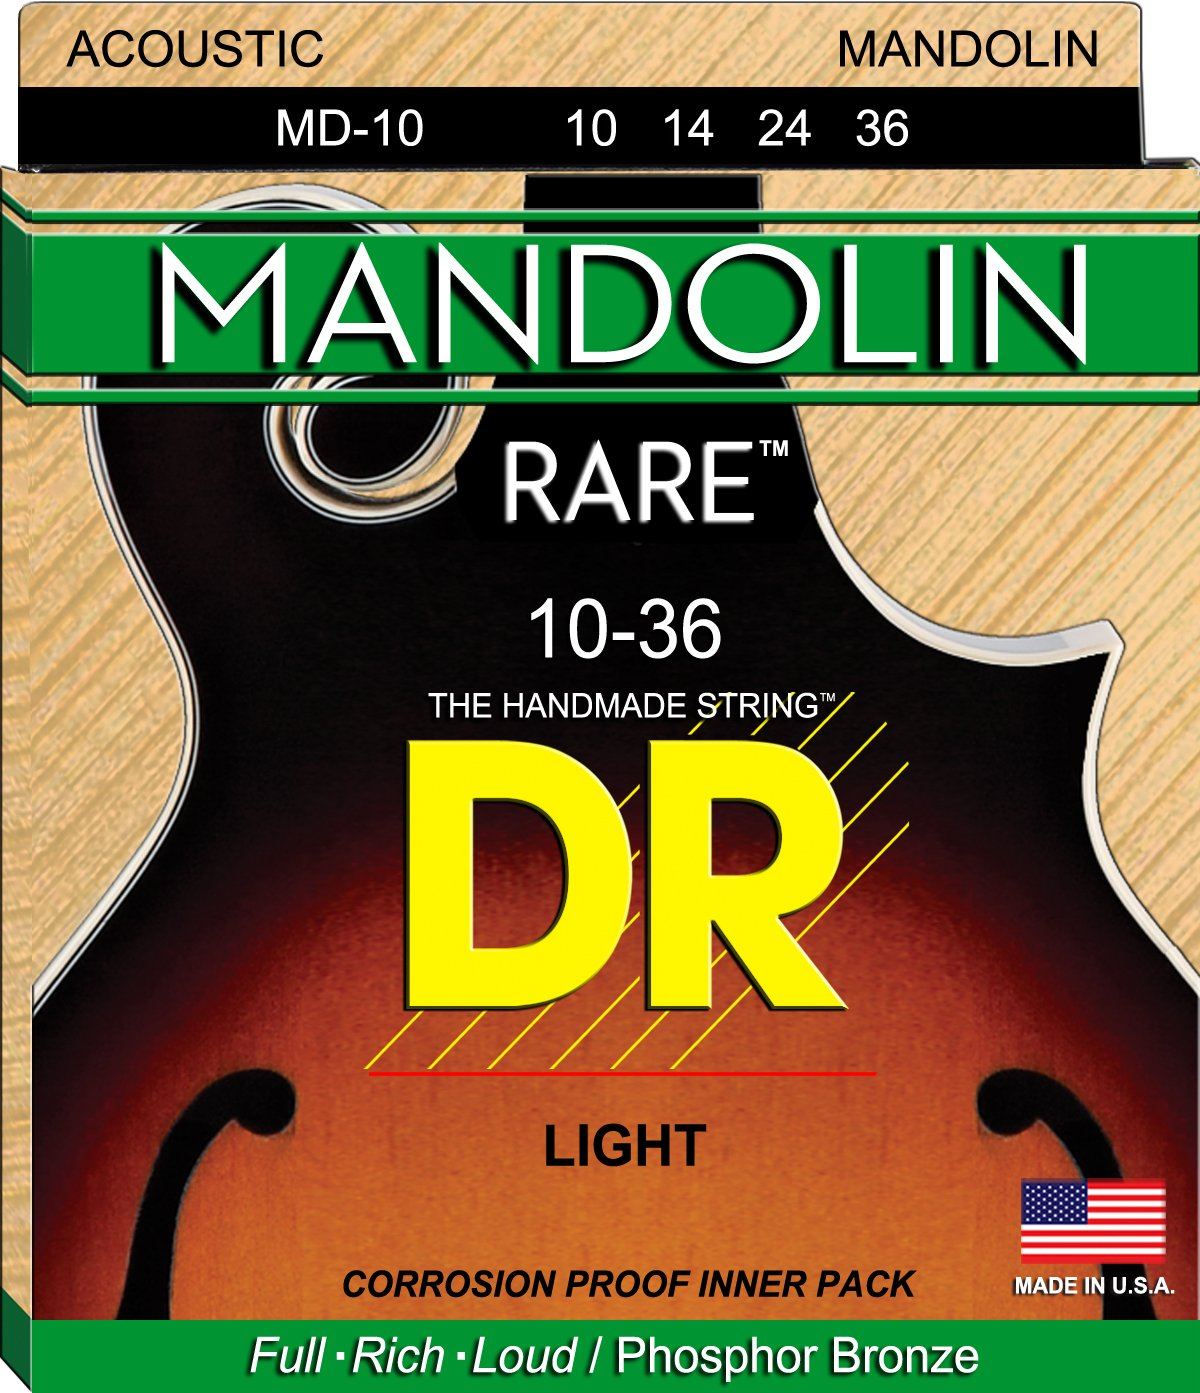 DR Strings Mandolin: 10, 14, 24, 36 DR Strings Mandolin: 10 DR Music MD-10